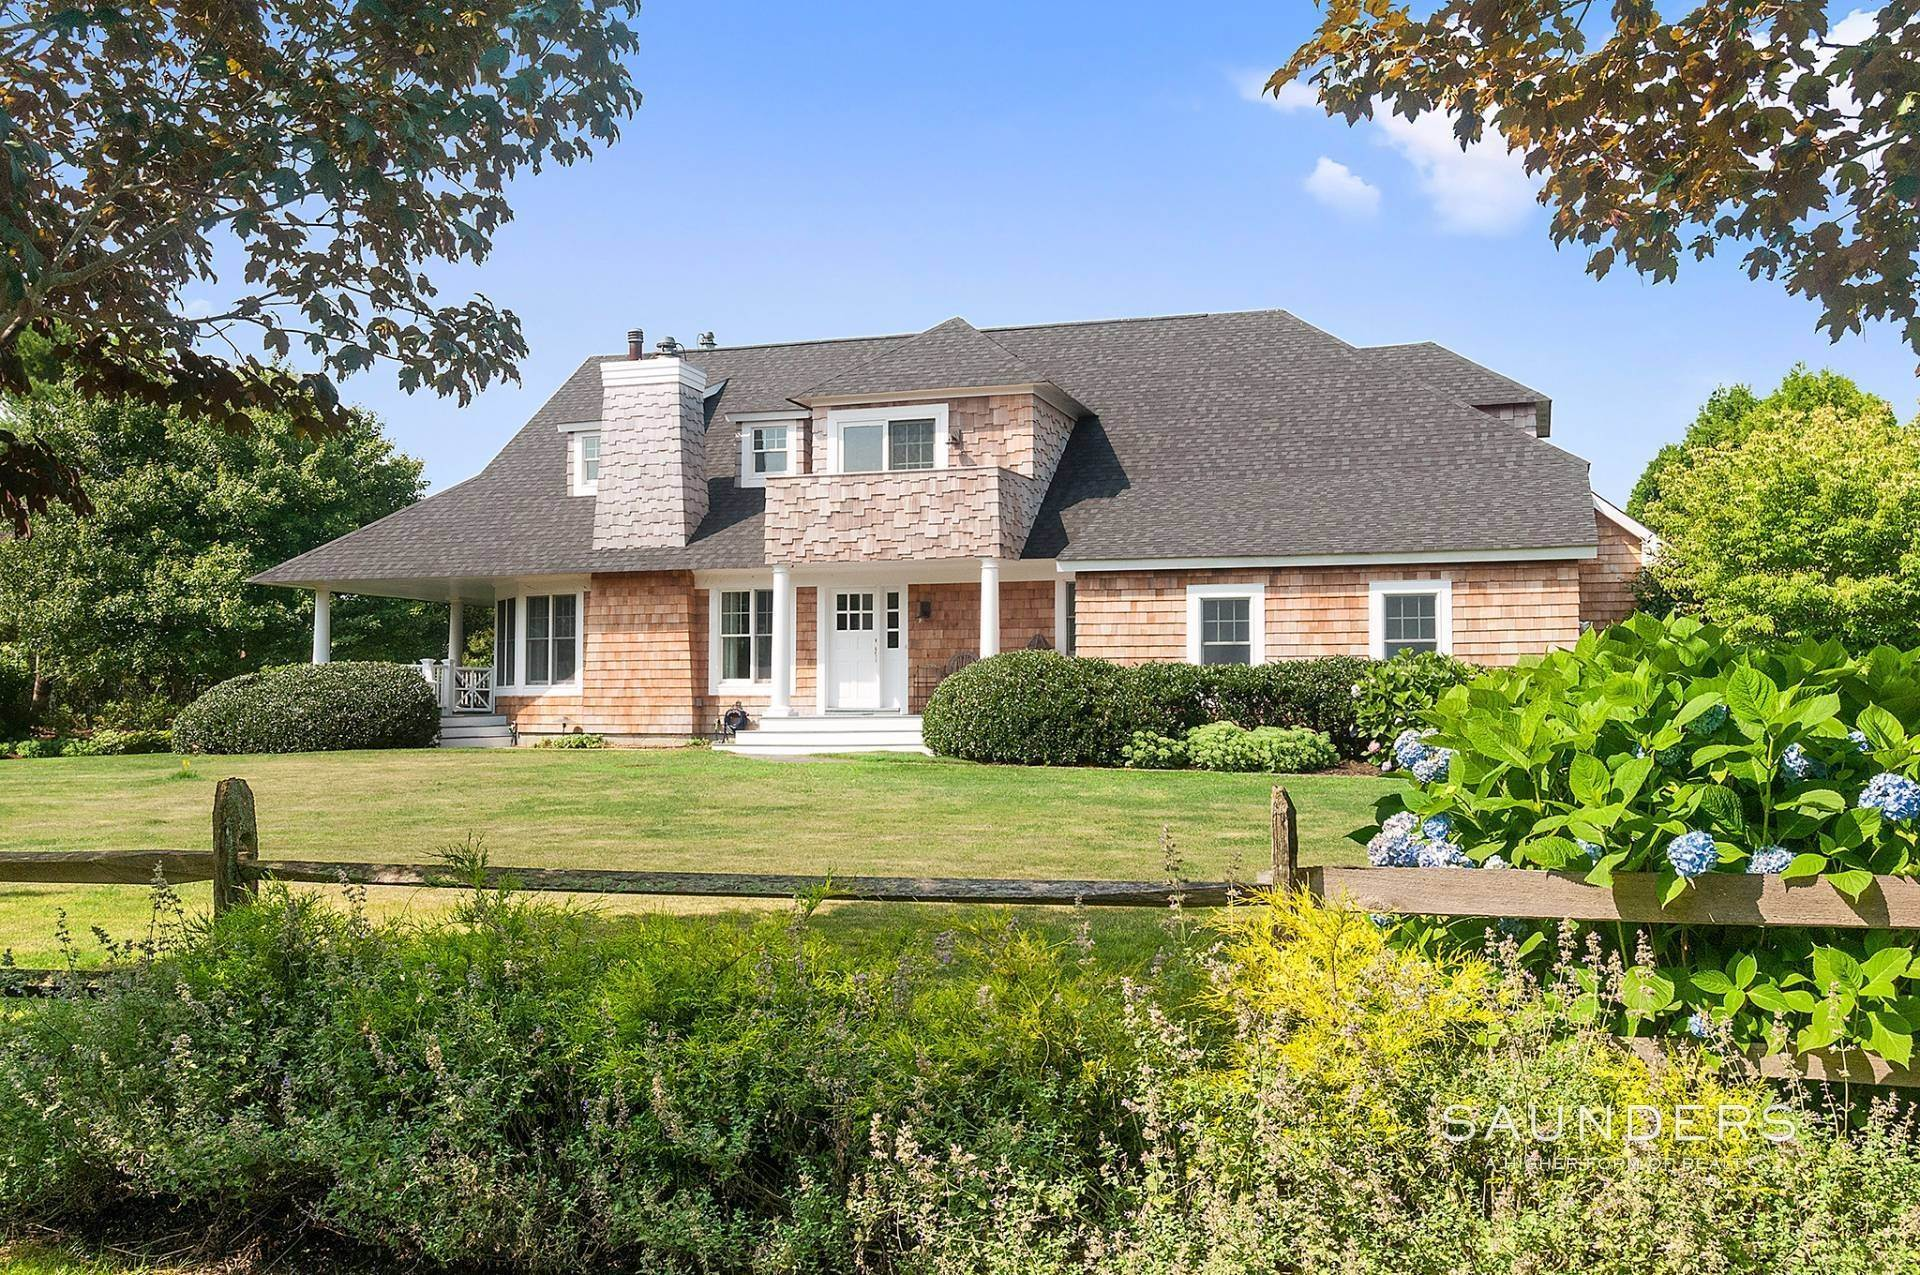 Single Family Homes at Luxury And Tennis In Sagaponack South Sagaponack Village, Southampton Town, NY 11962